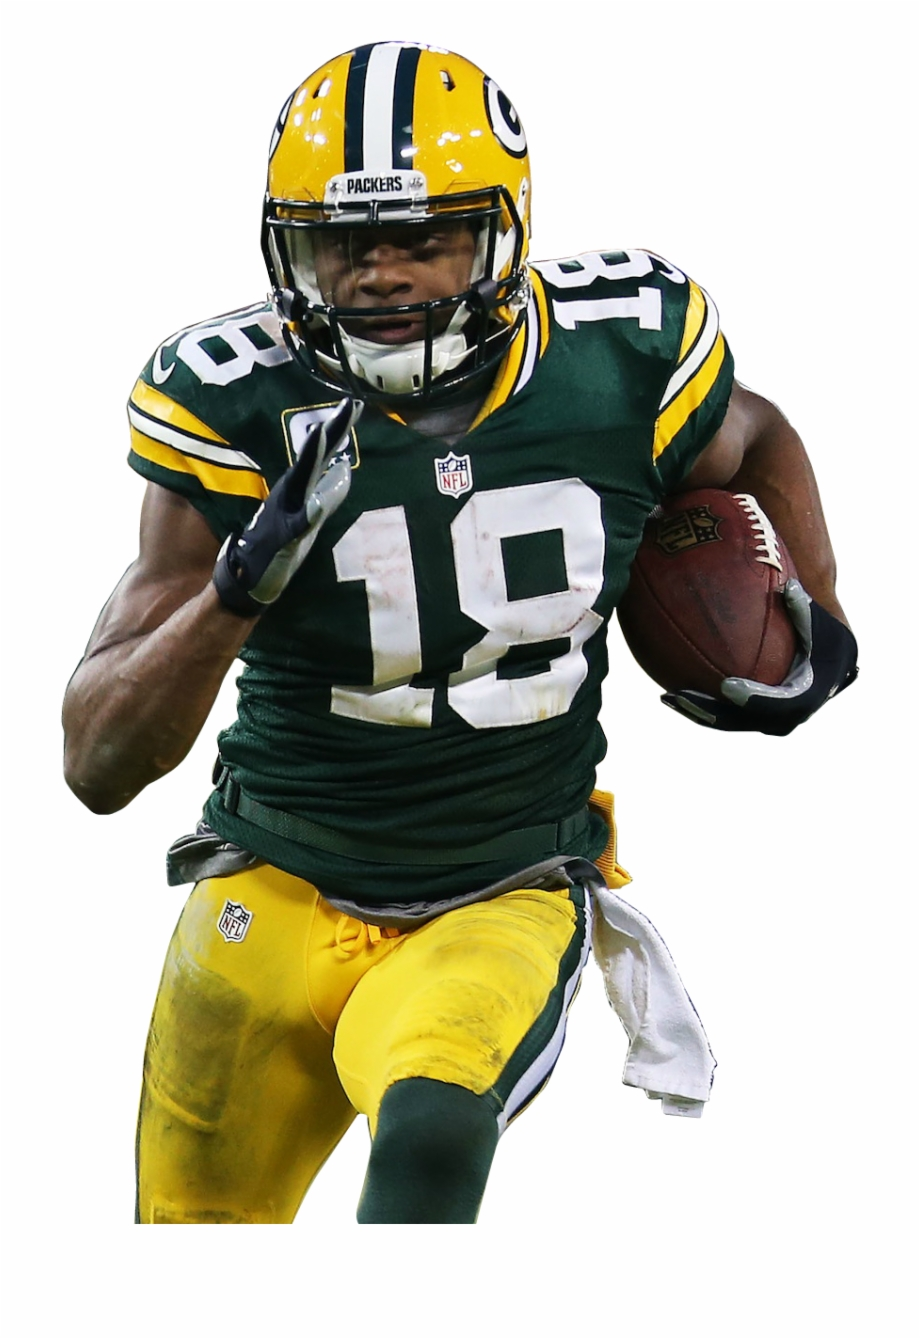 Randall cobb clipart picture black and white download Randall Cobb - - Sprint Football Free PNG Images & Clipart ... picture black and white download